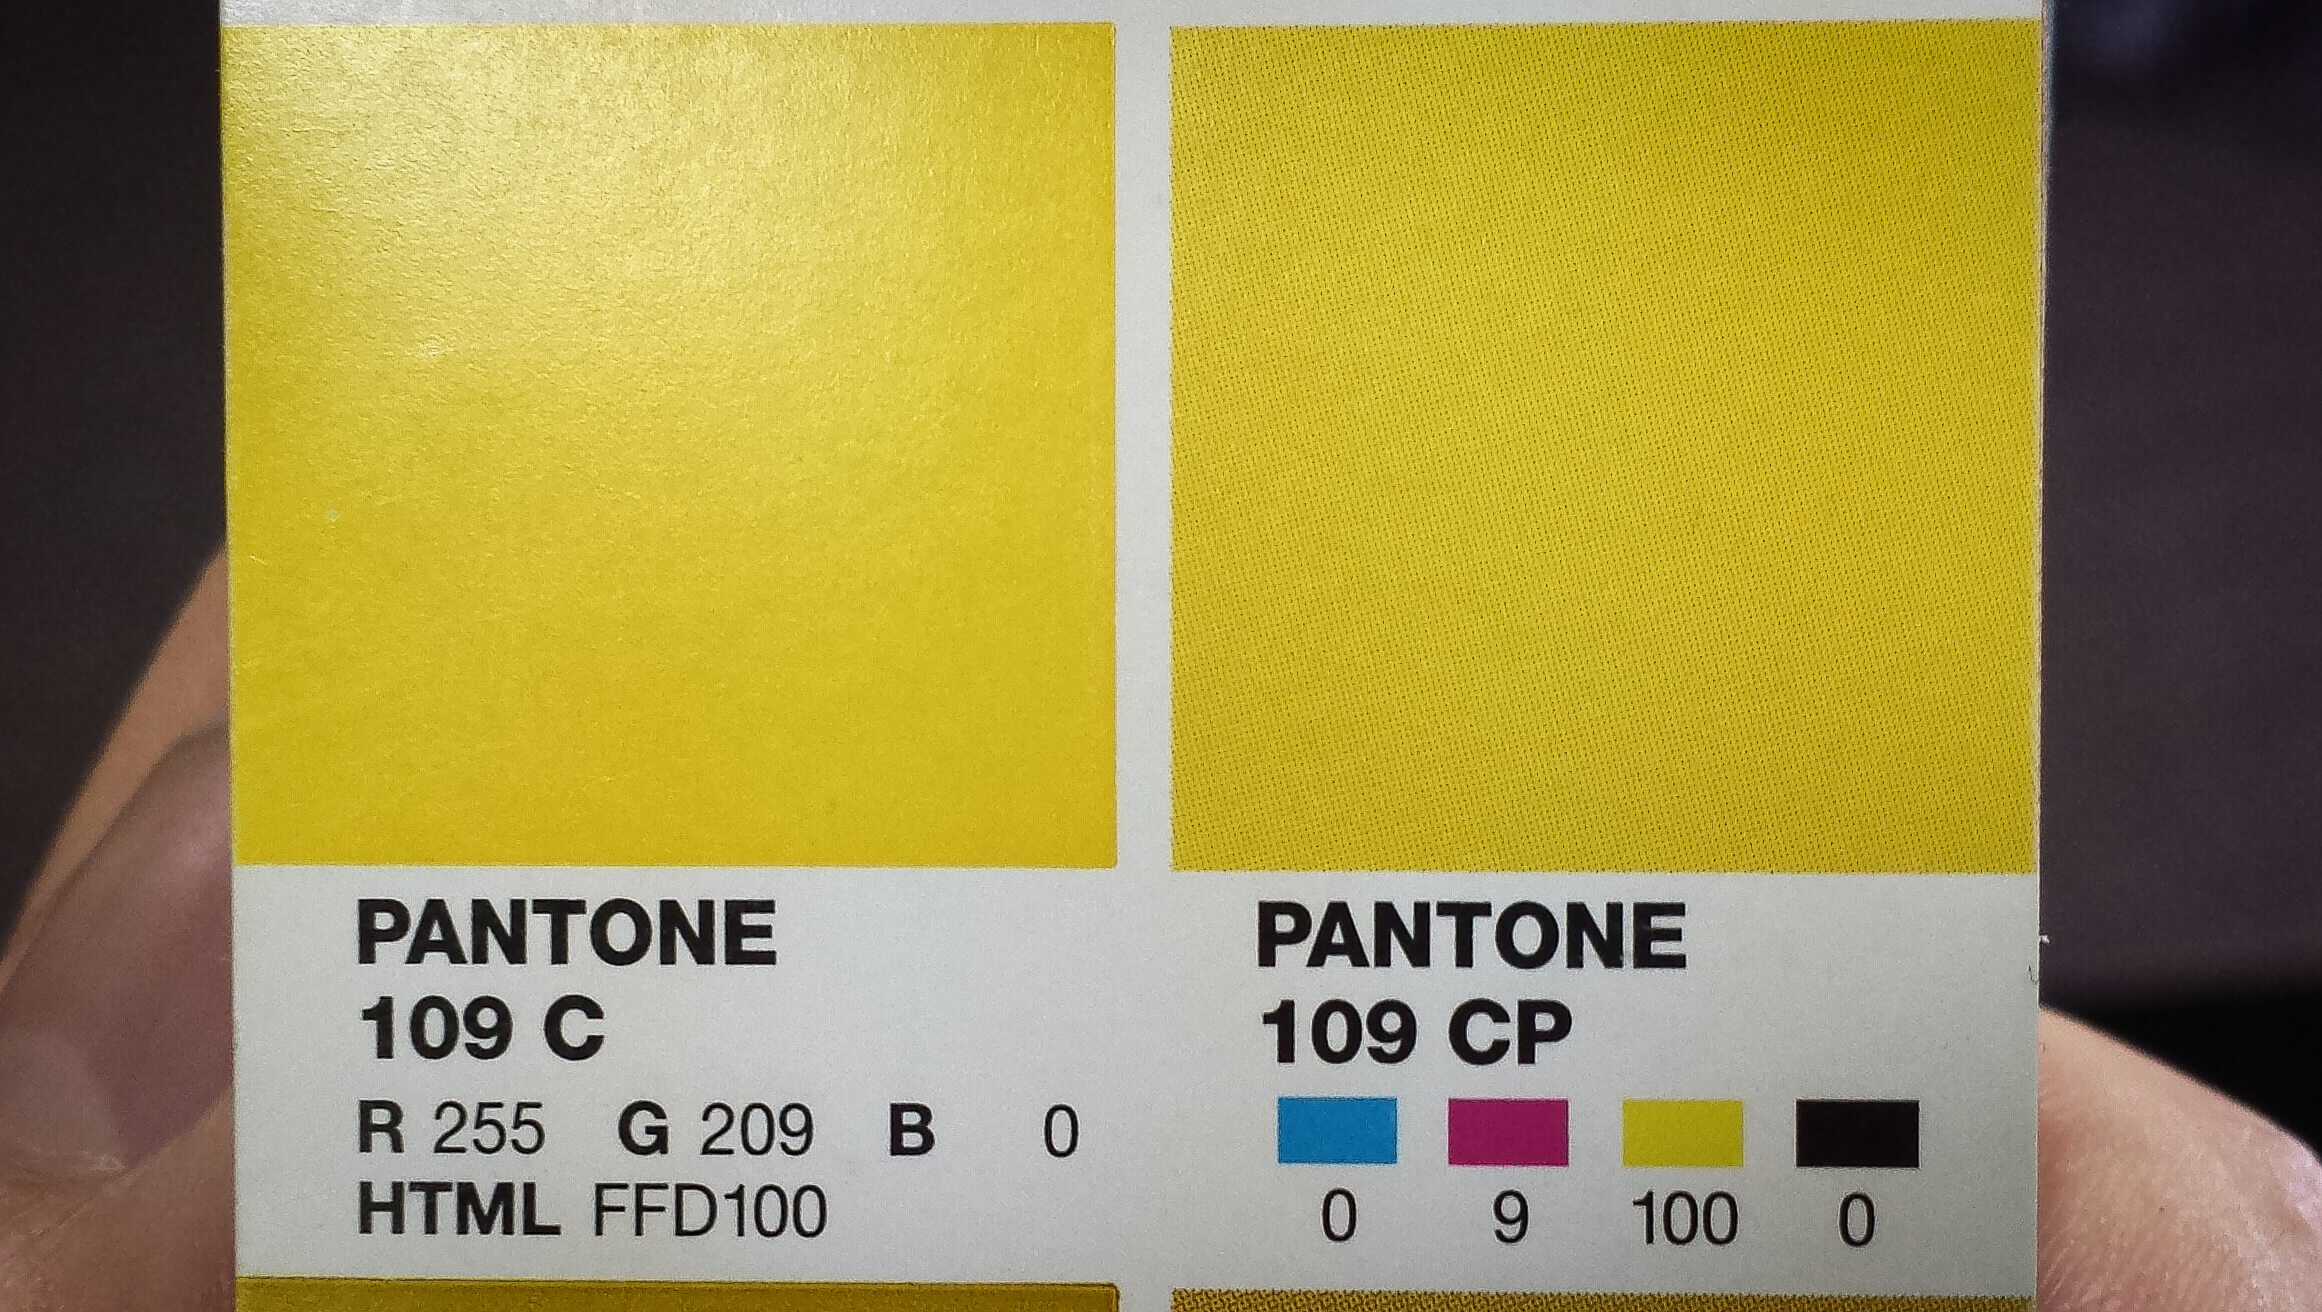 Pantone swatches include recommended CMYK, RGB and HTML values